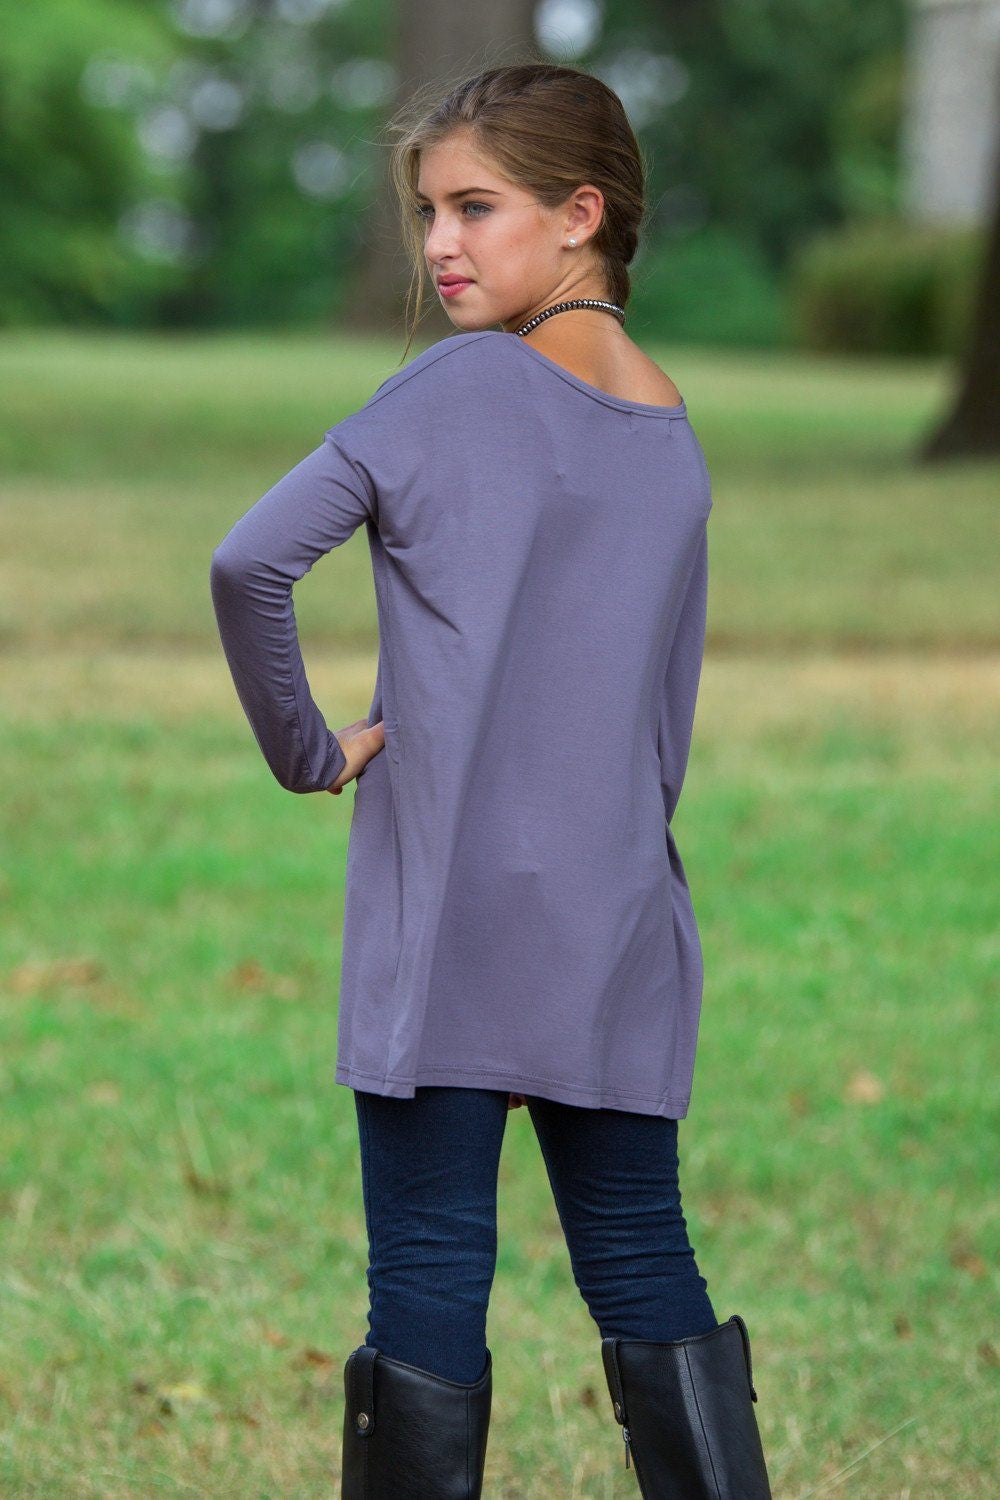 Long Sleeve Kids Piko Top - Charcoal Grey - Piko Clothing